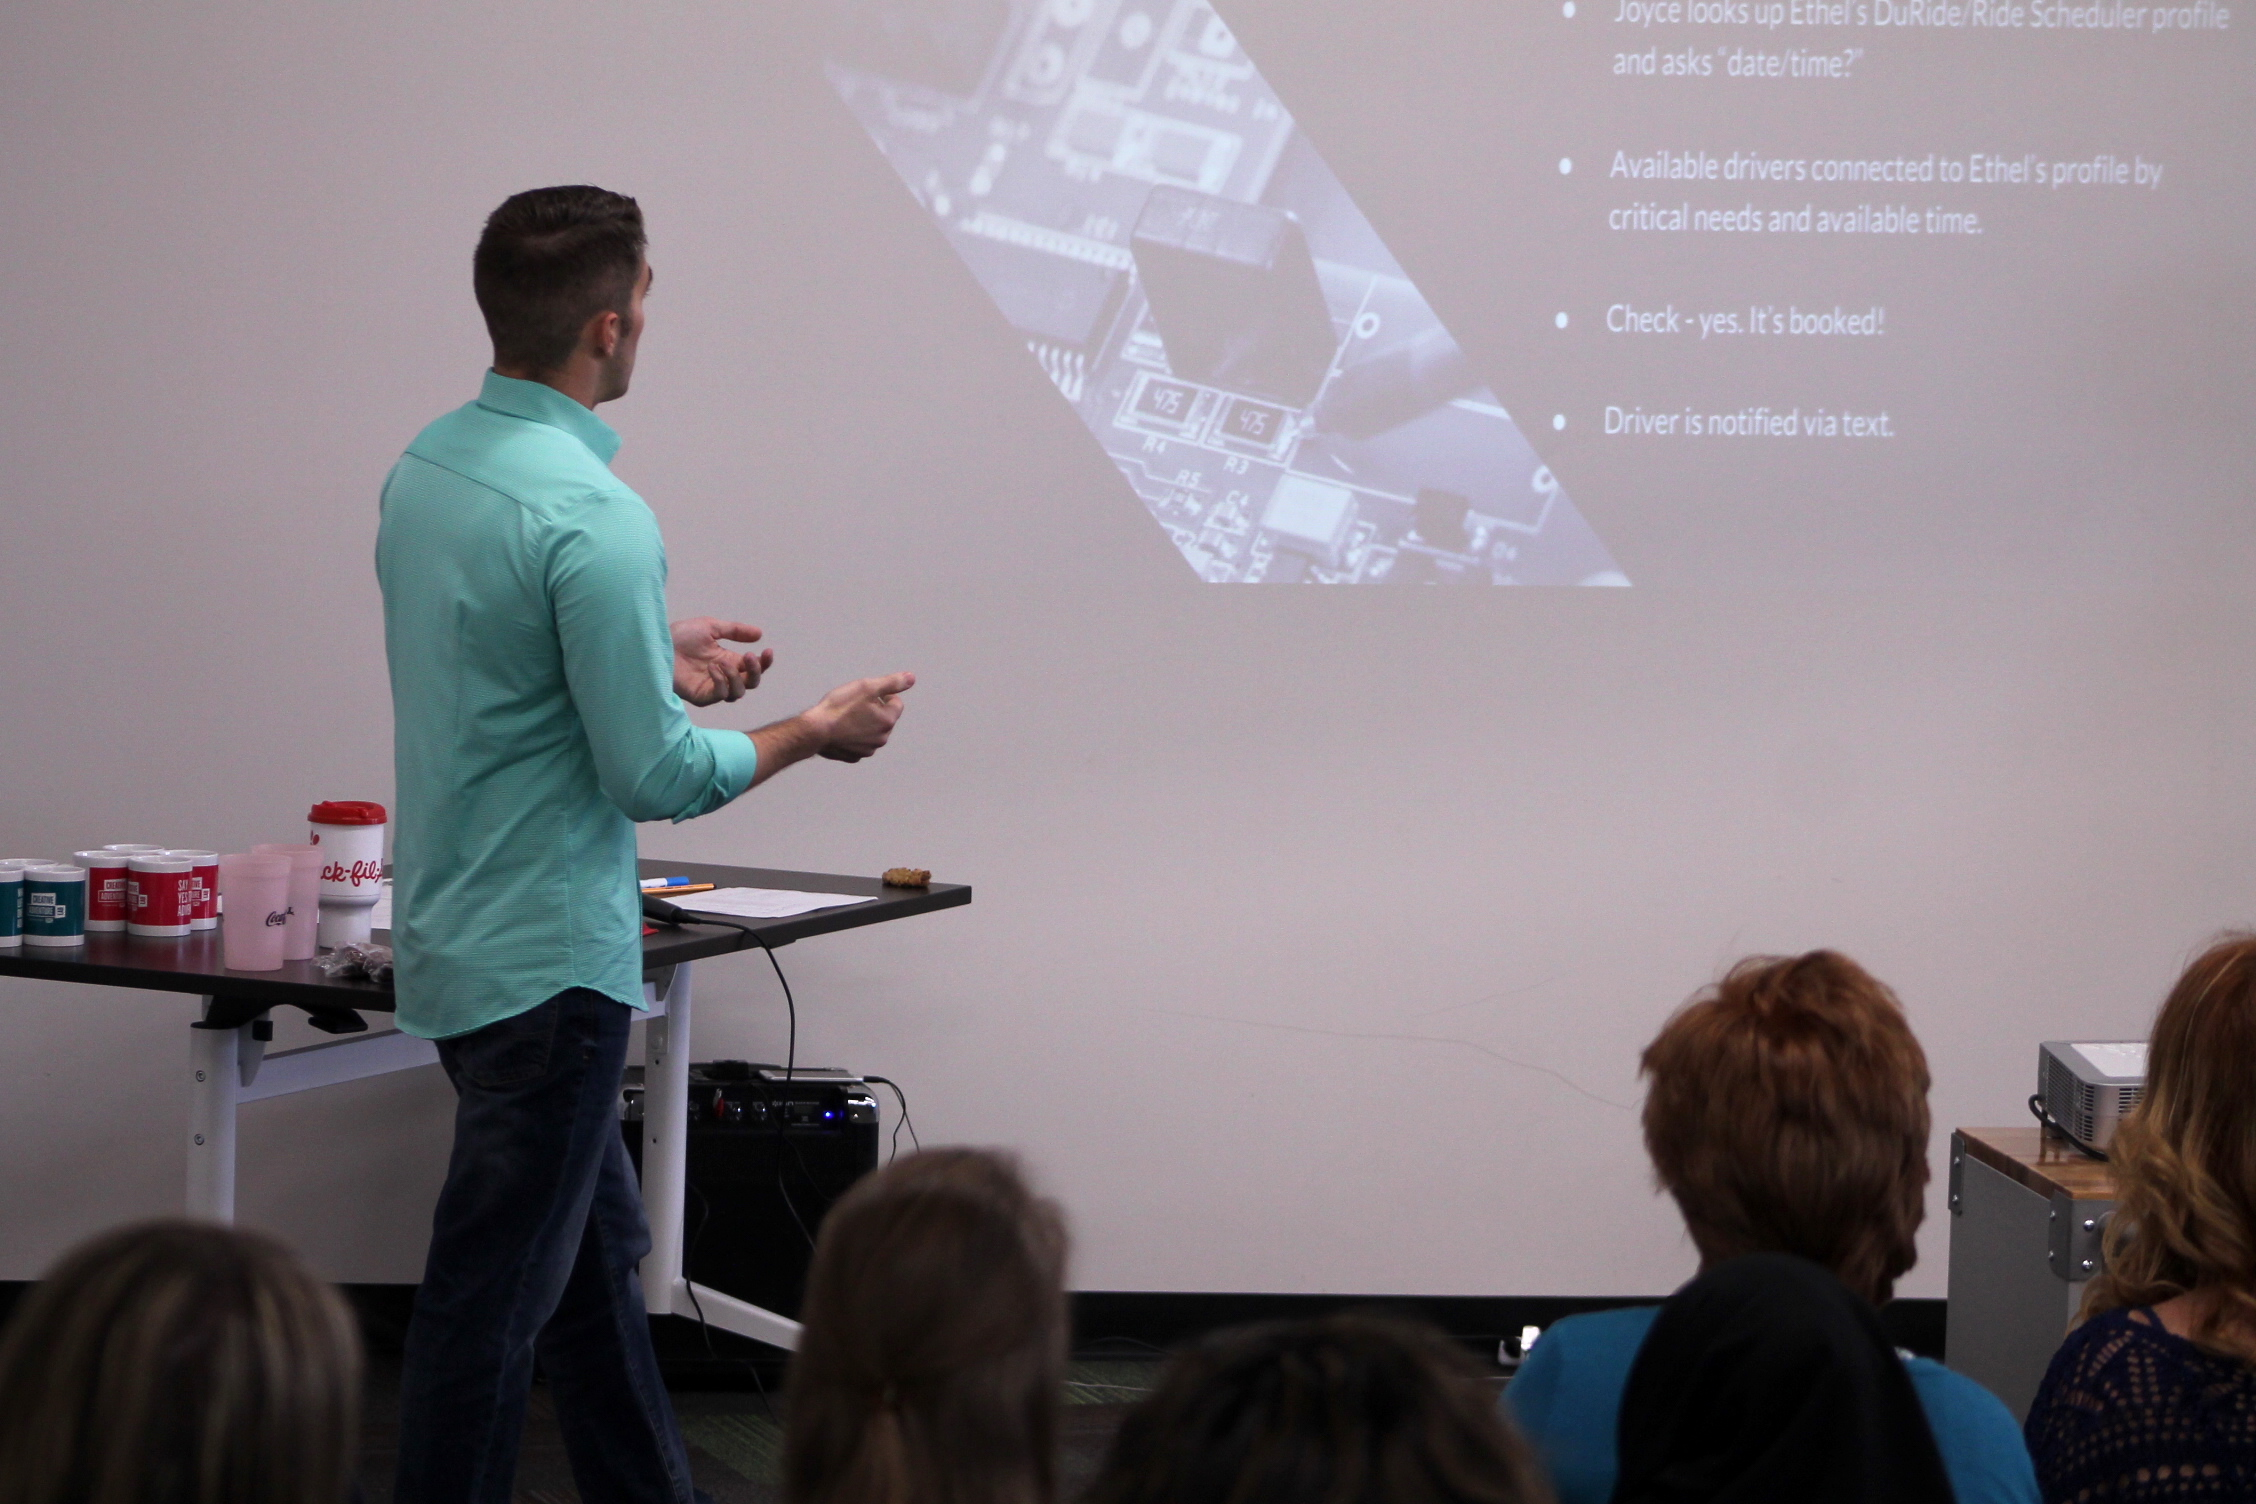 Community volunteers pitch solutions for local nonprofits